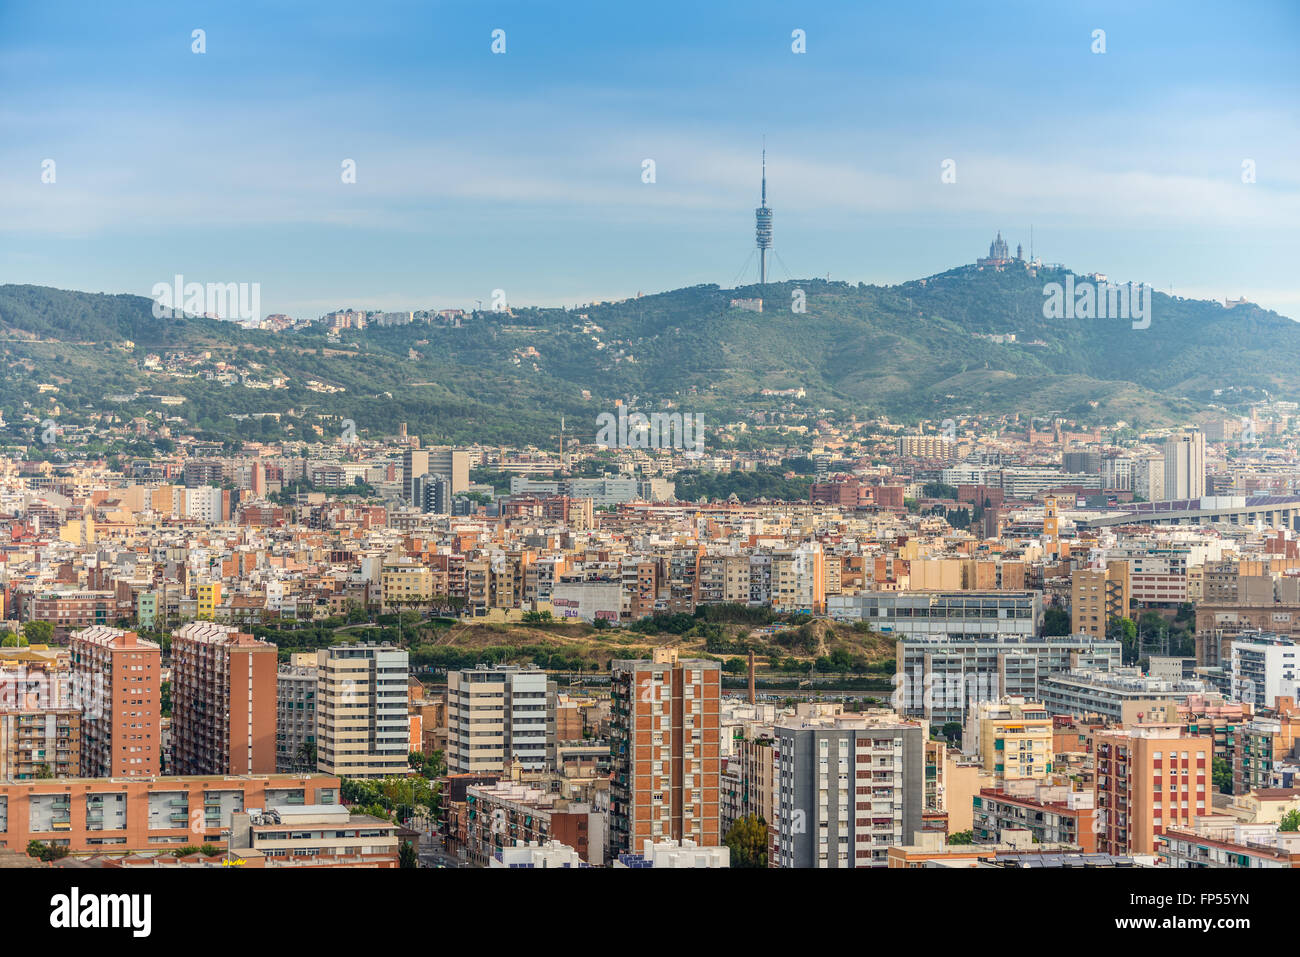 The view of Barcelona from high up in the Renaissance Barcelona Fira Hotel - Stock Image